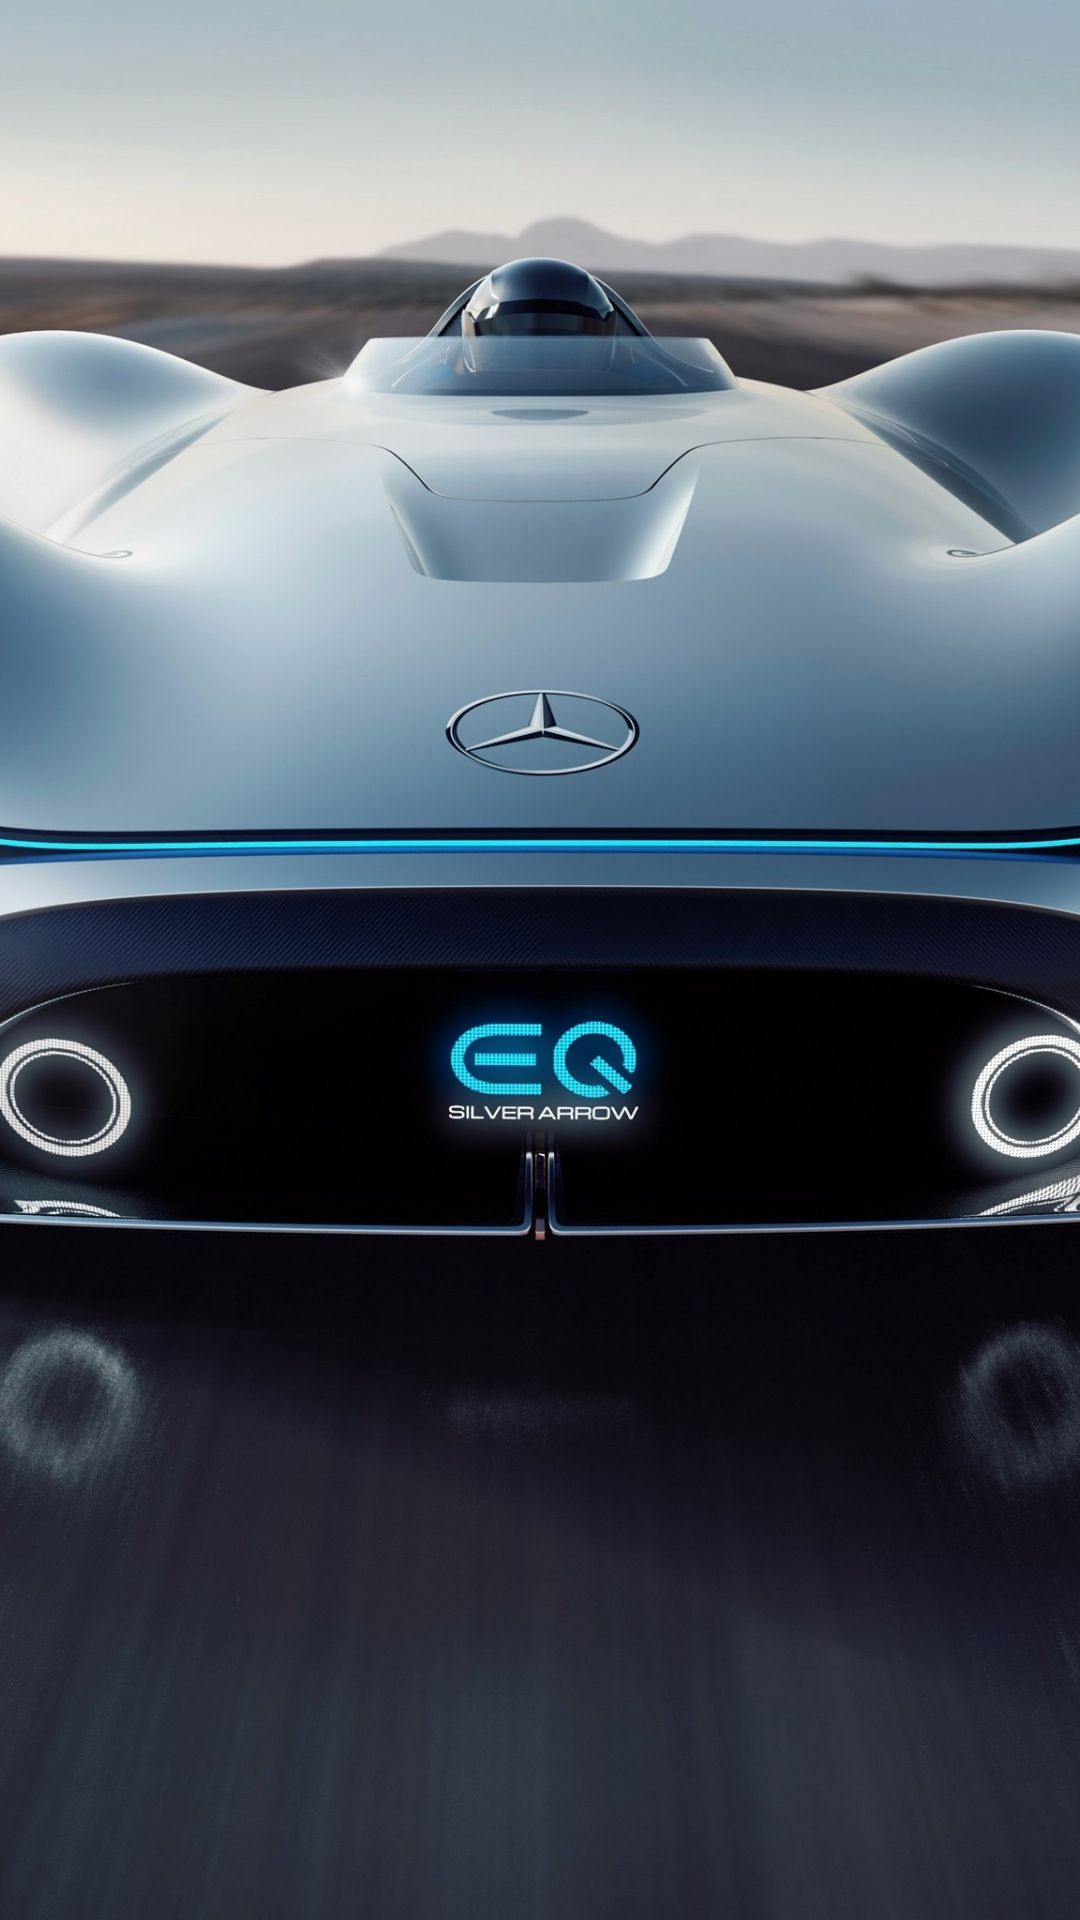 Front 2018 Mercedes Benz Vision Eq Silver Arrow On Road 1080x1920